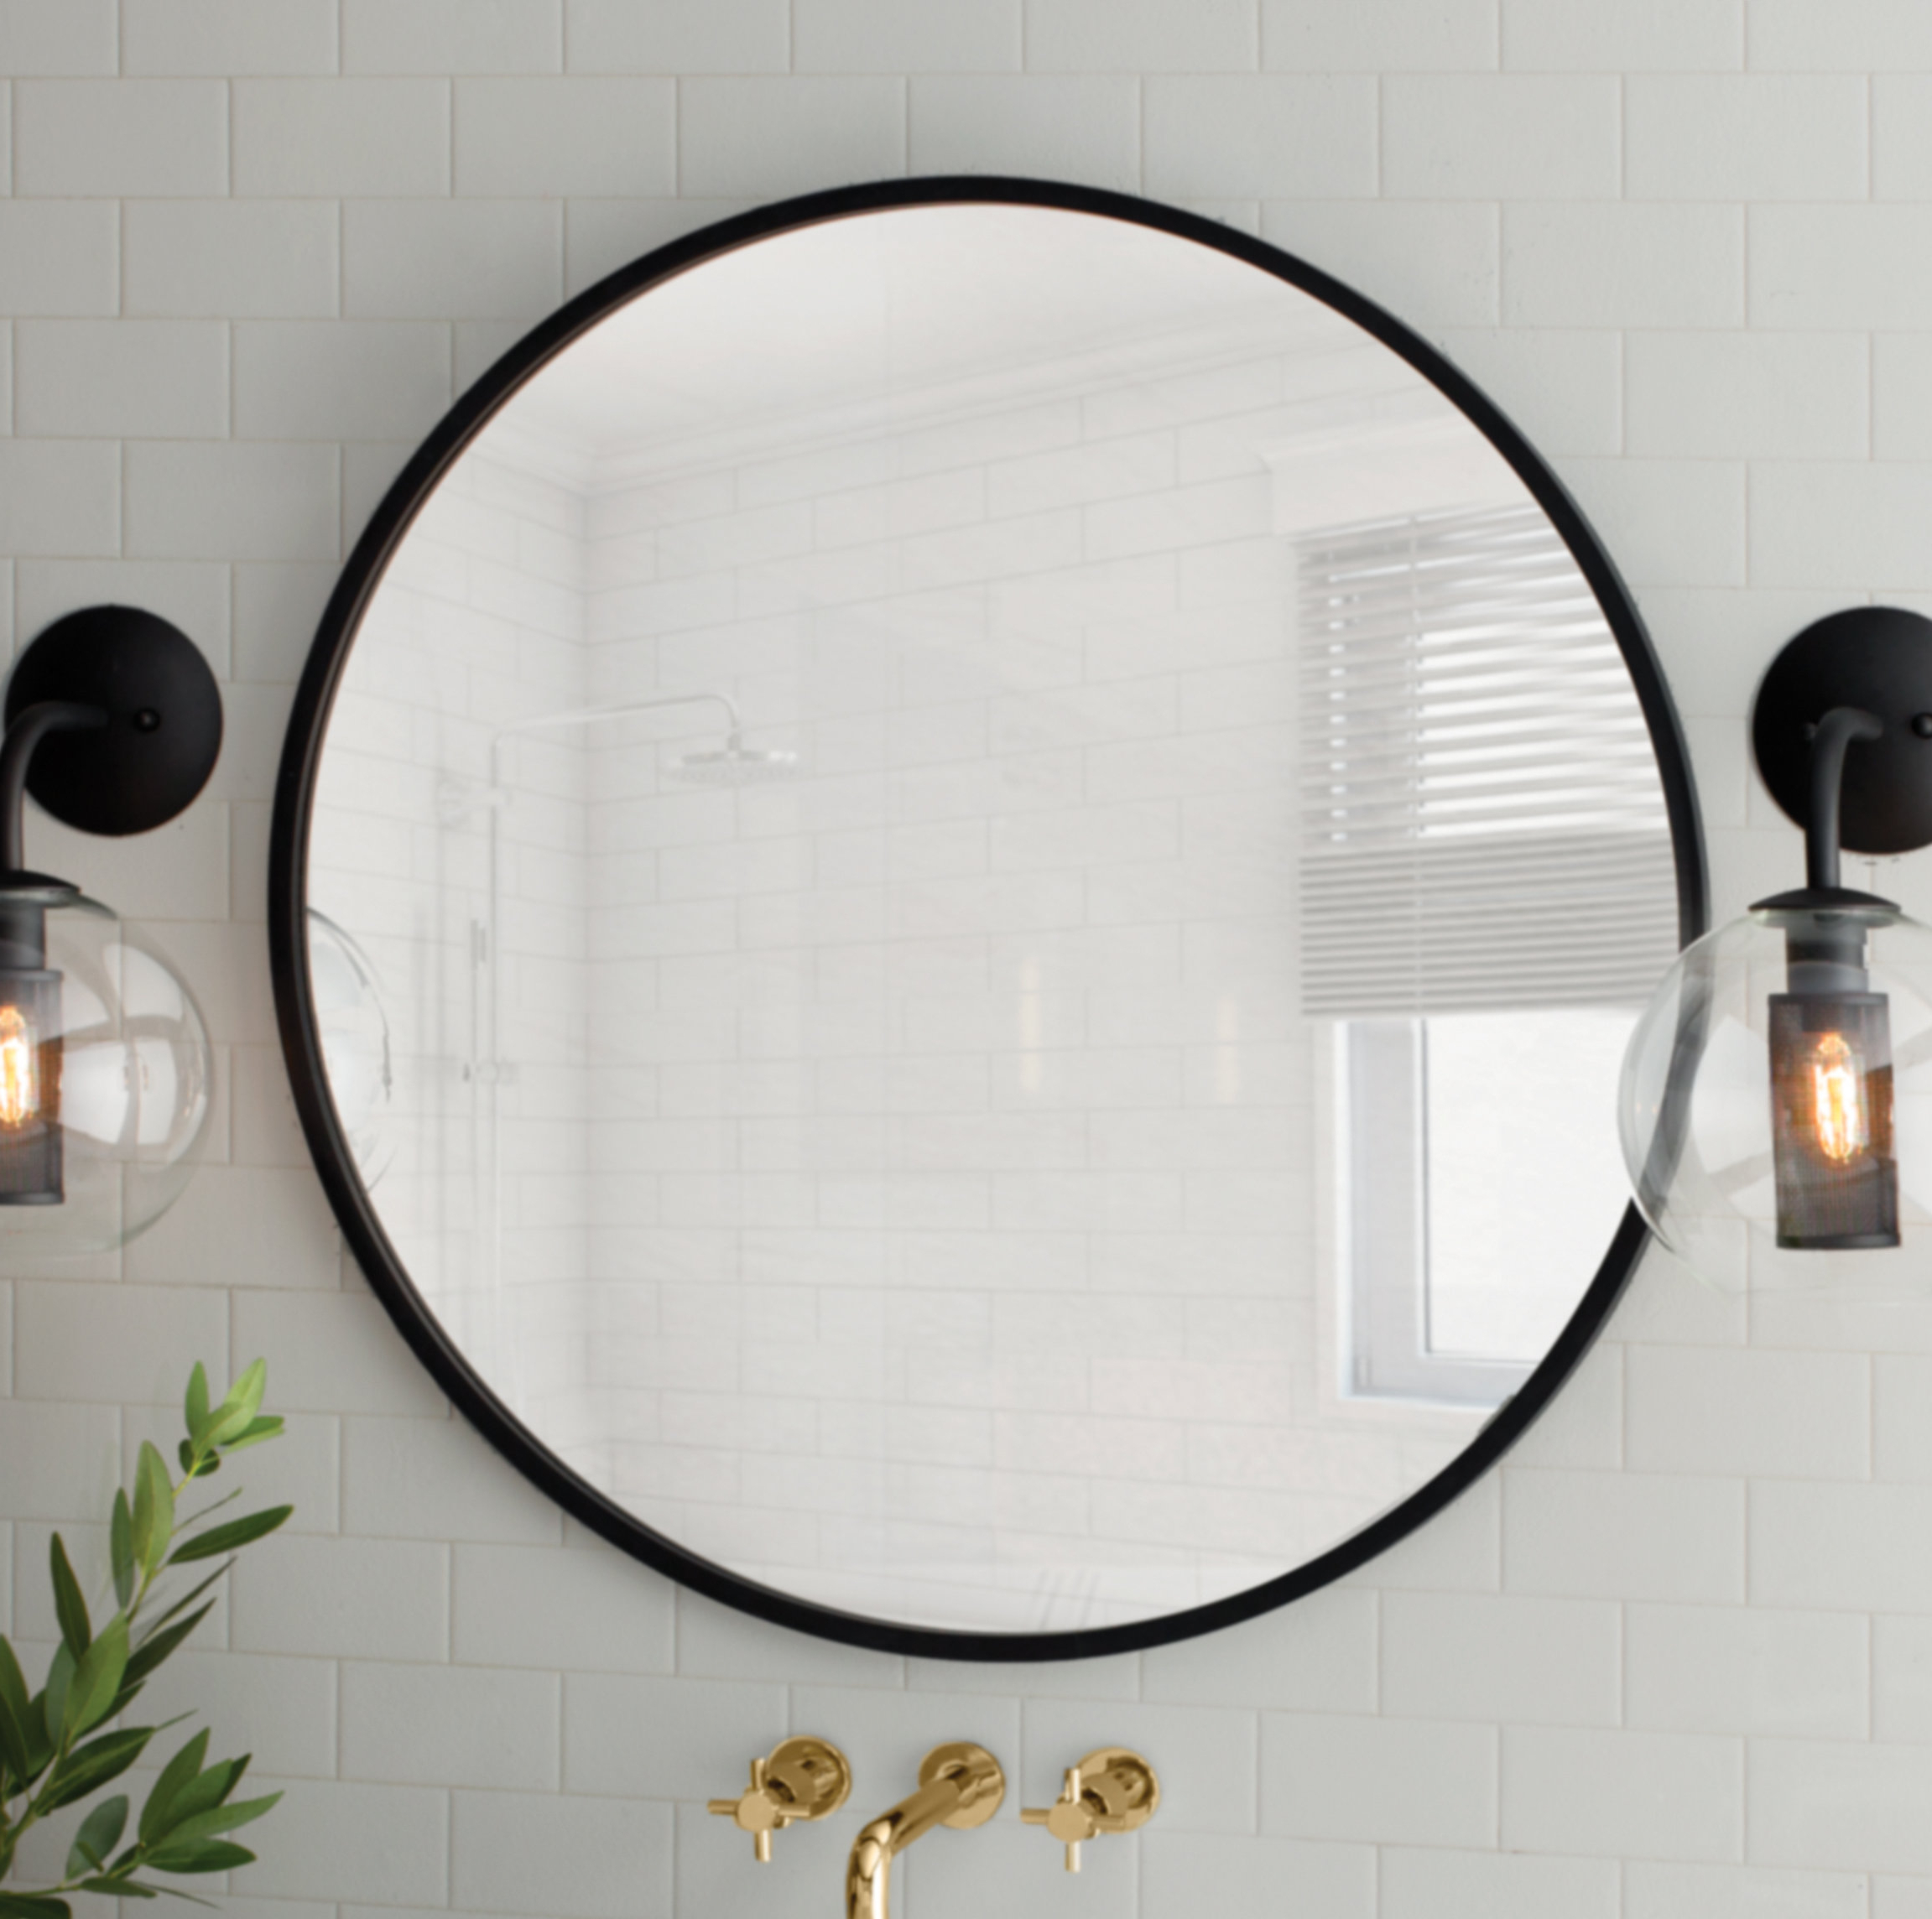 Umbra Hub Modern And Contemporary Accent Mirror With Well Liked Loftis Modern & Contemporary Accent Wall Mirrors (View 20 of 20)